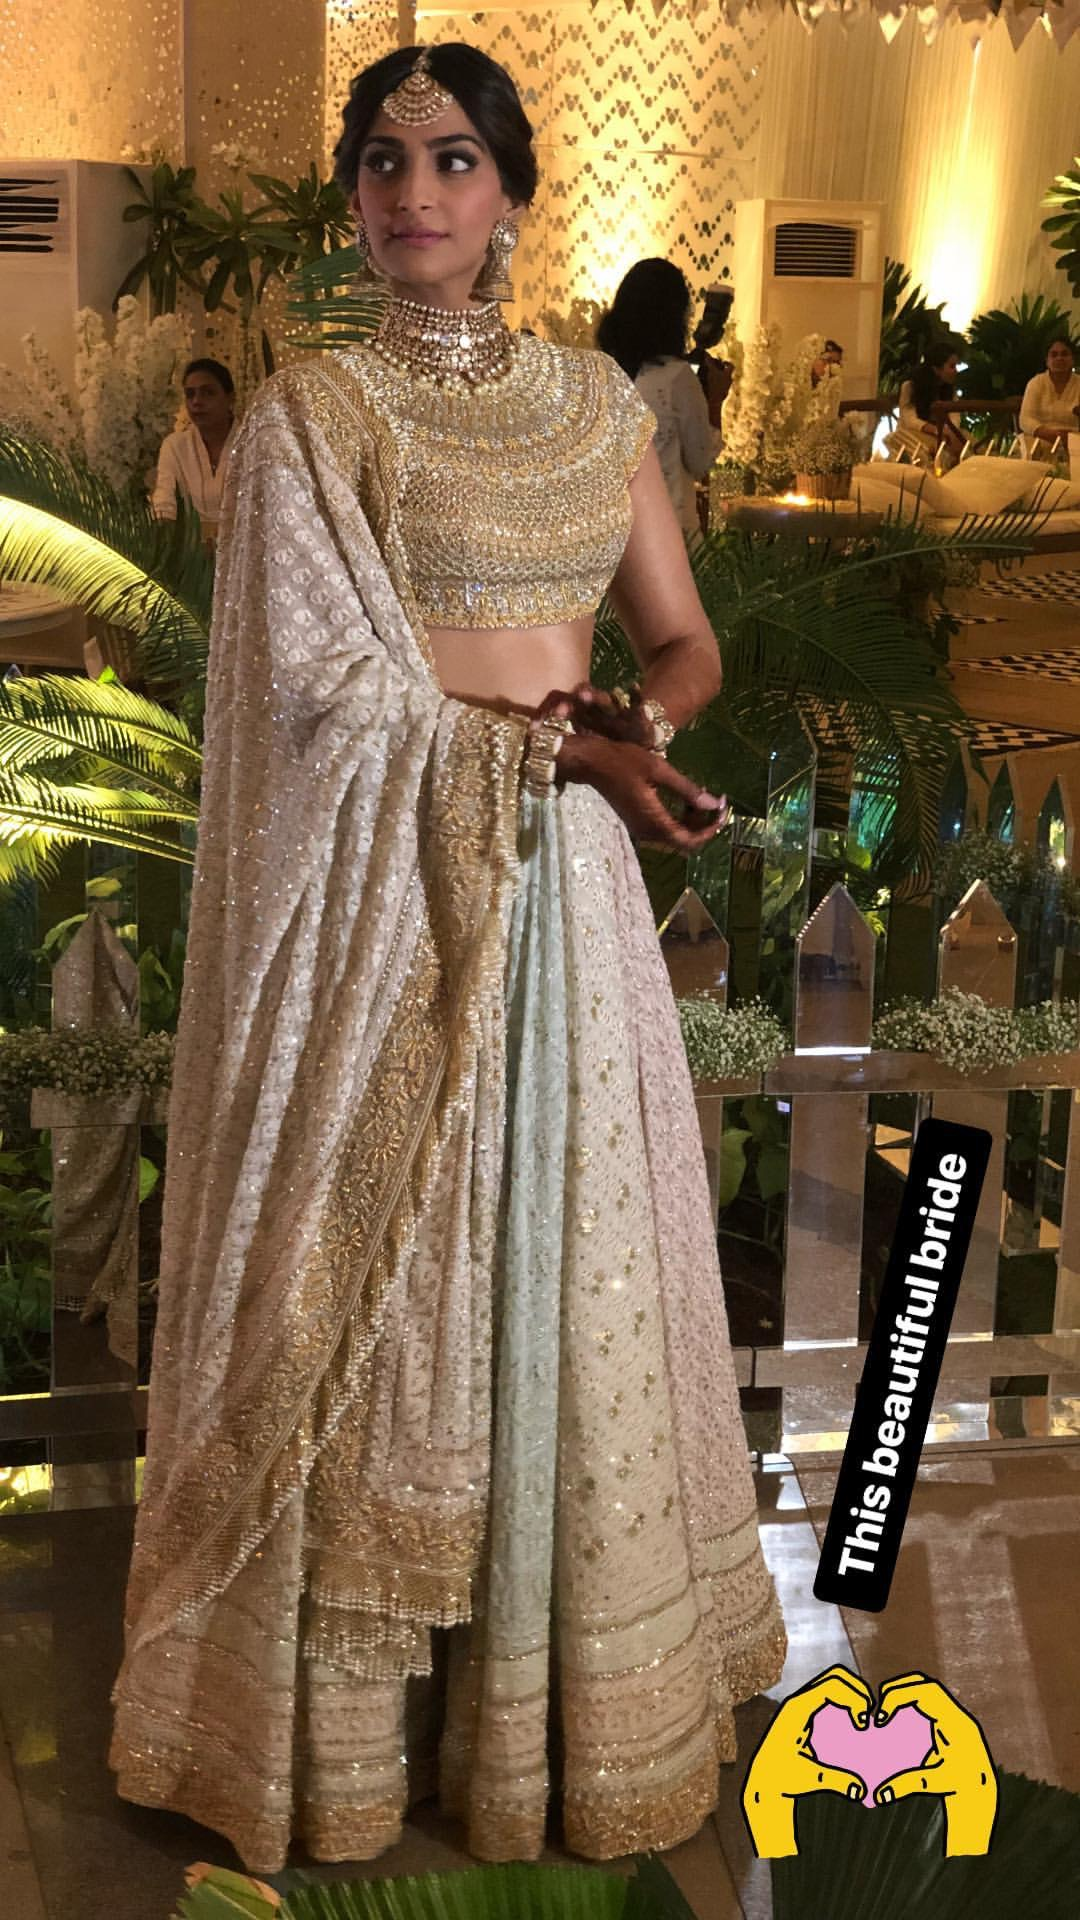 Sonam Kapoor's Mehendi Function Outfit- Pastel coloured Multi-Panelled Lehenga by Abu Jani Sandeep Khosla